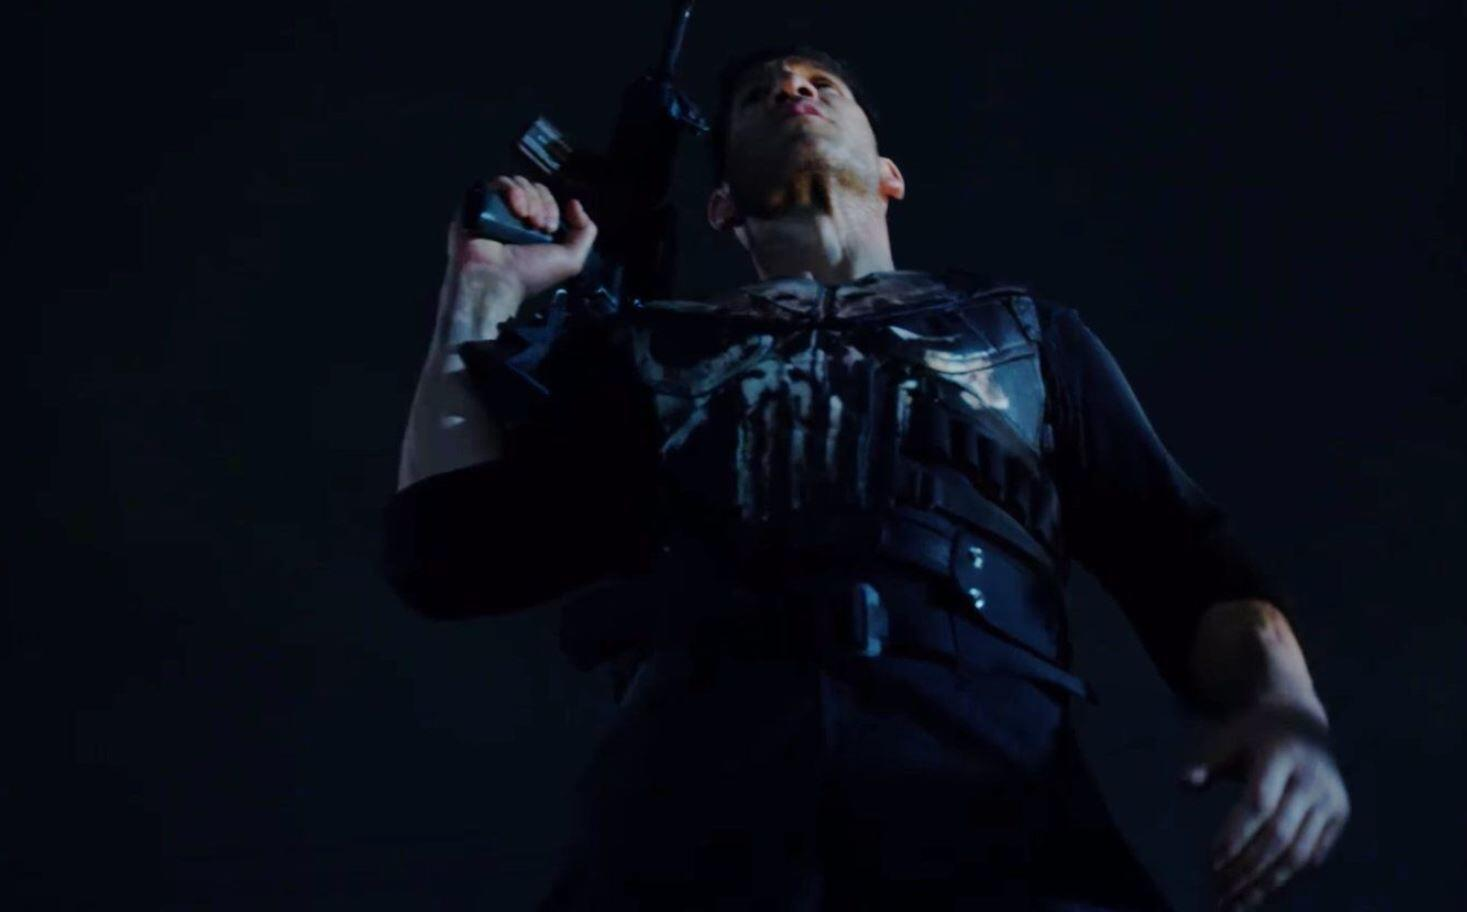 The Punisher Season 2 Trailer Has Frank Castle And